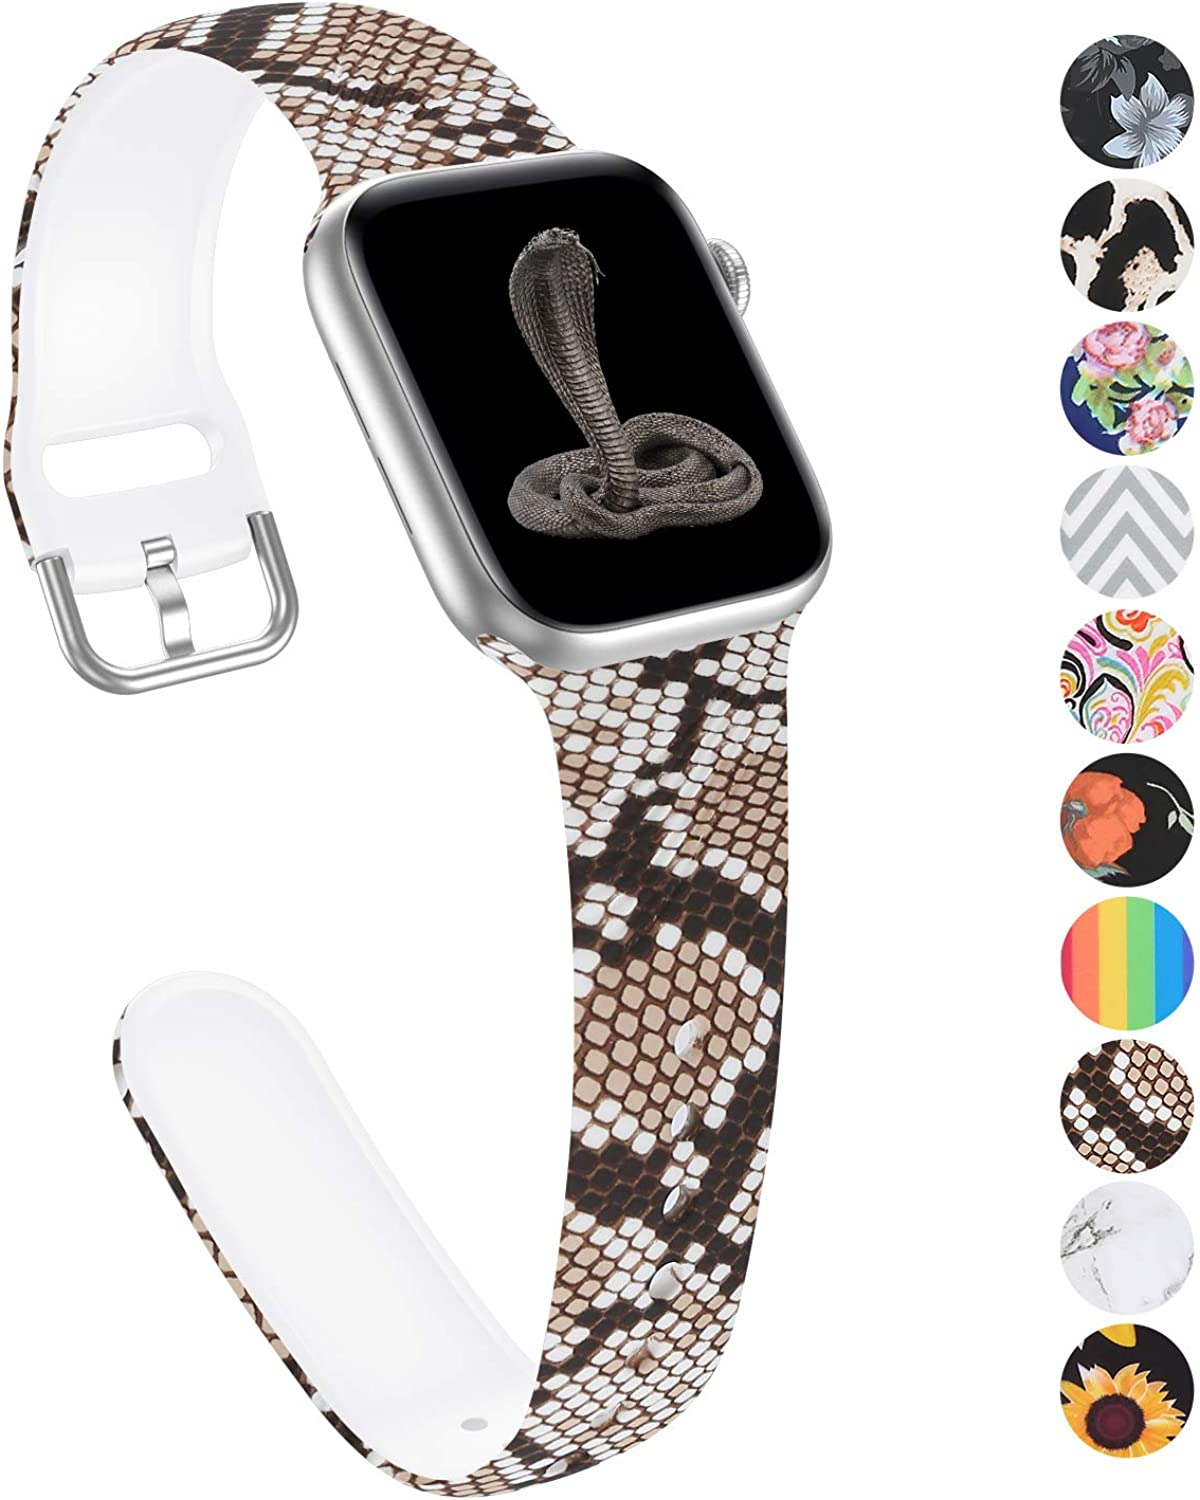 Floral Band Compatible with Apple Watch Band 40mm 38mm for Women Print Animal Silicone Sport Watch Band Replacement Band Compatible for Apple Watch Series 6 5 4 3 2 1 SE Sport Edition Hermès